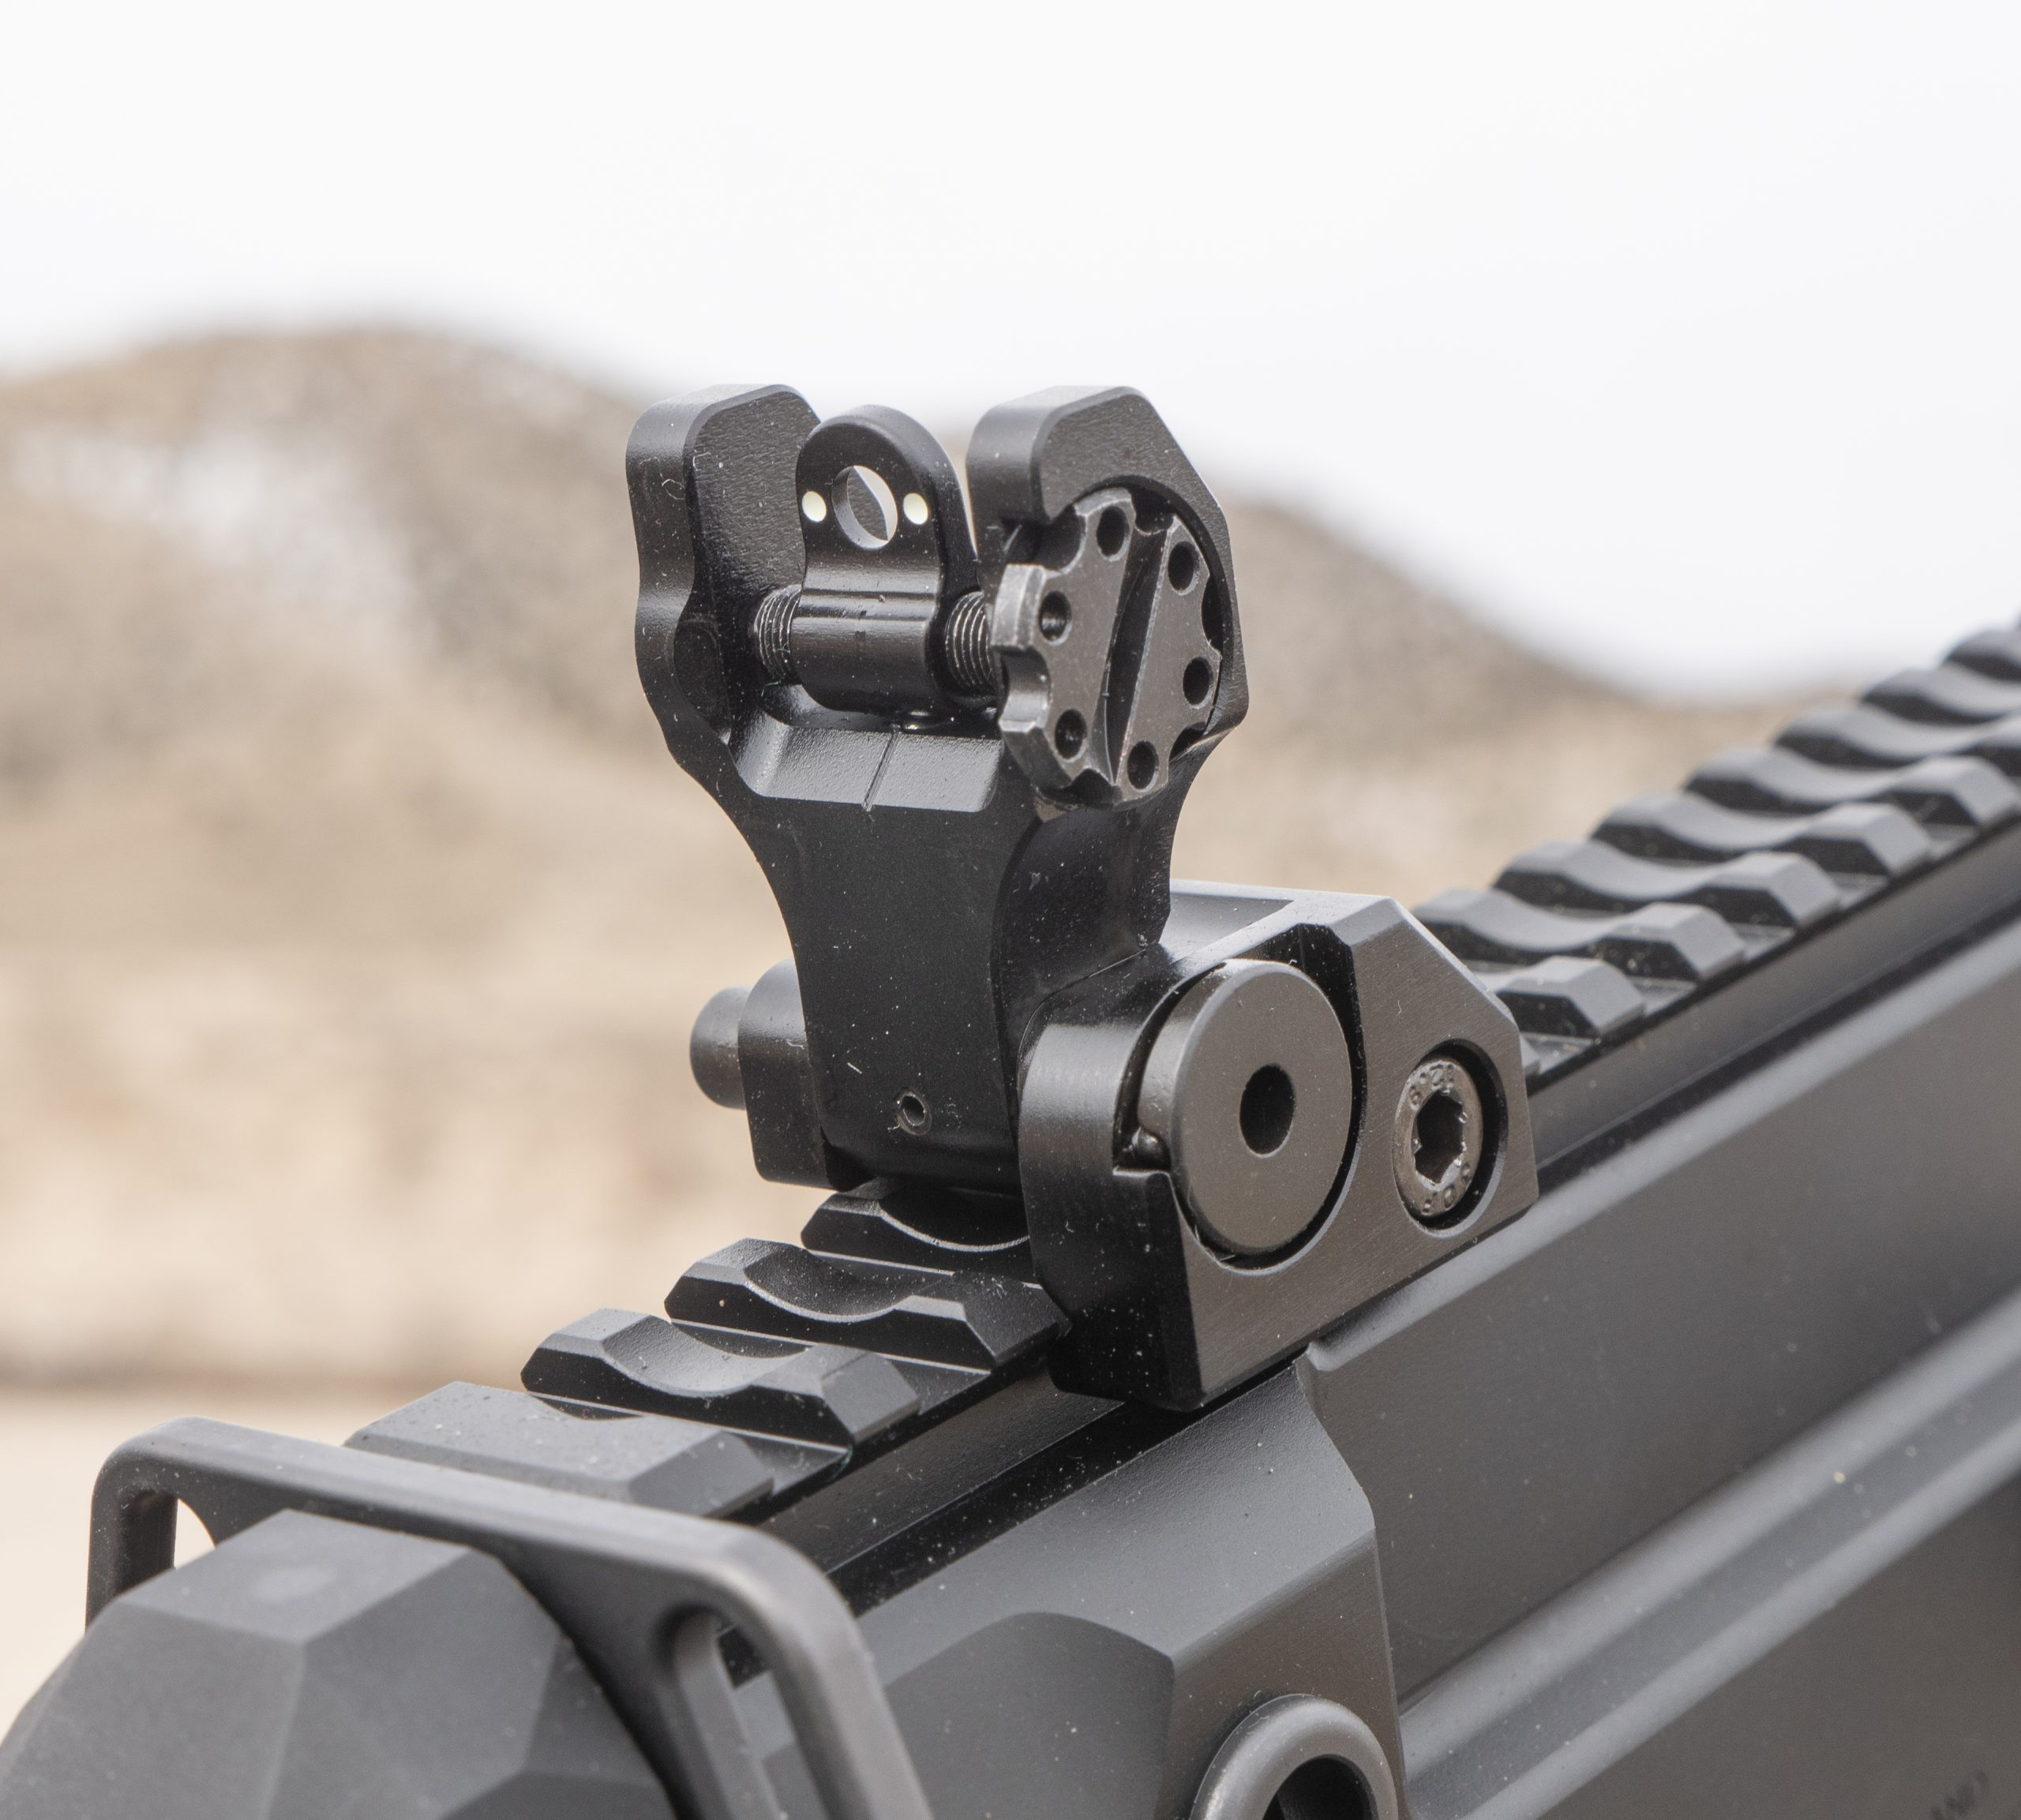 Iron Sights, they aren't just for backup